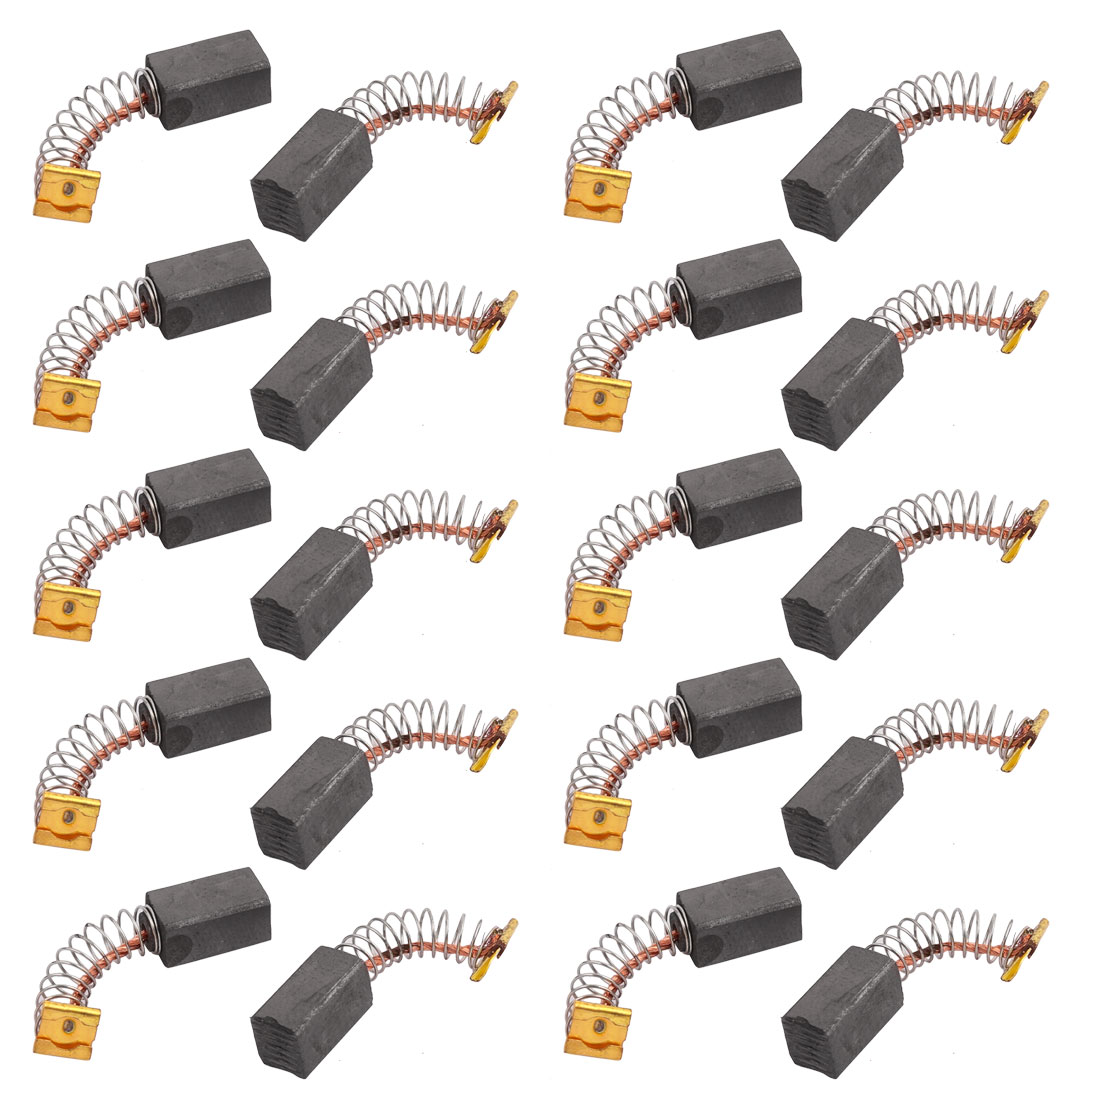 10Pairs 12.7x7.4x6.4mm Carbon Brushes Power Tool for Electric Hammer Drill Motor